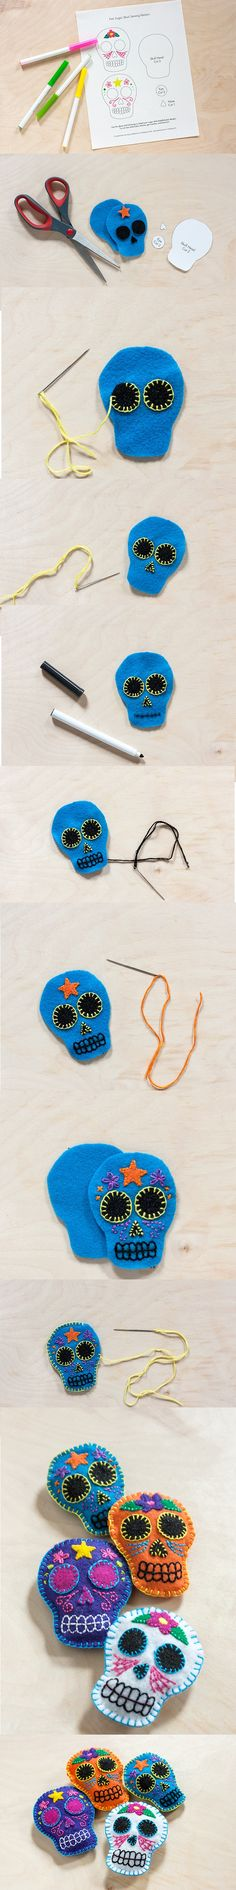 DIY: Felt Sugar Skull Sachets Sugar Skull Crafts, Sugar Skull Art, Sugar Skulls, Mexican Skulls, Mexican Art, Felt Diy, Felt Crafts, Day Of The Dead Skull, Halloween Crafts